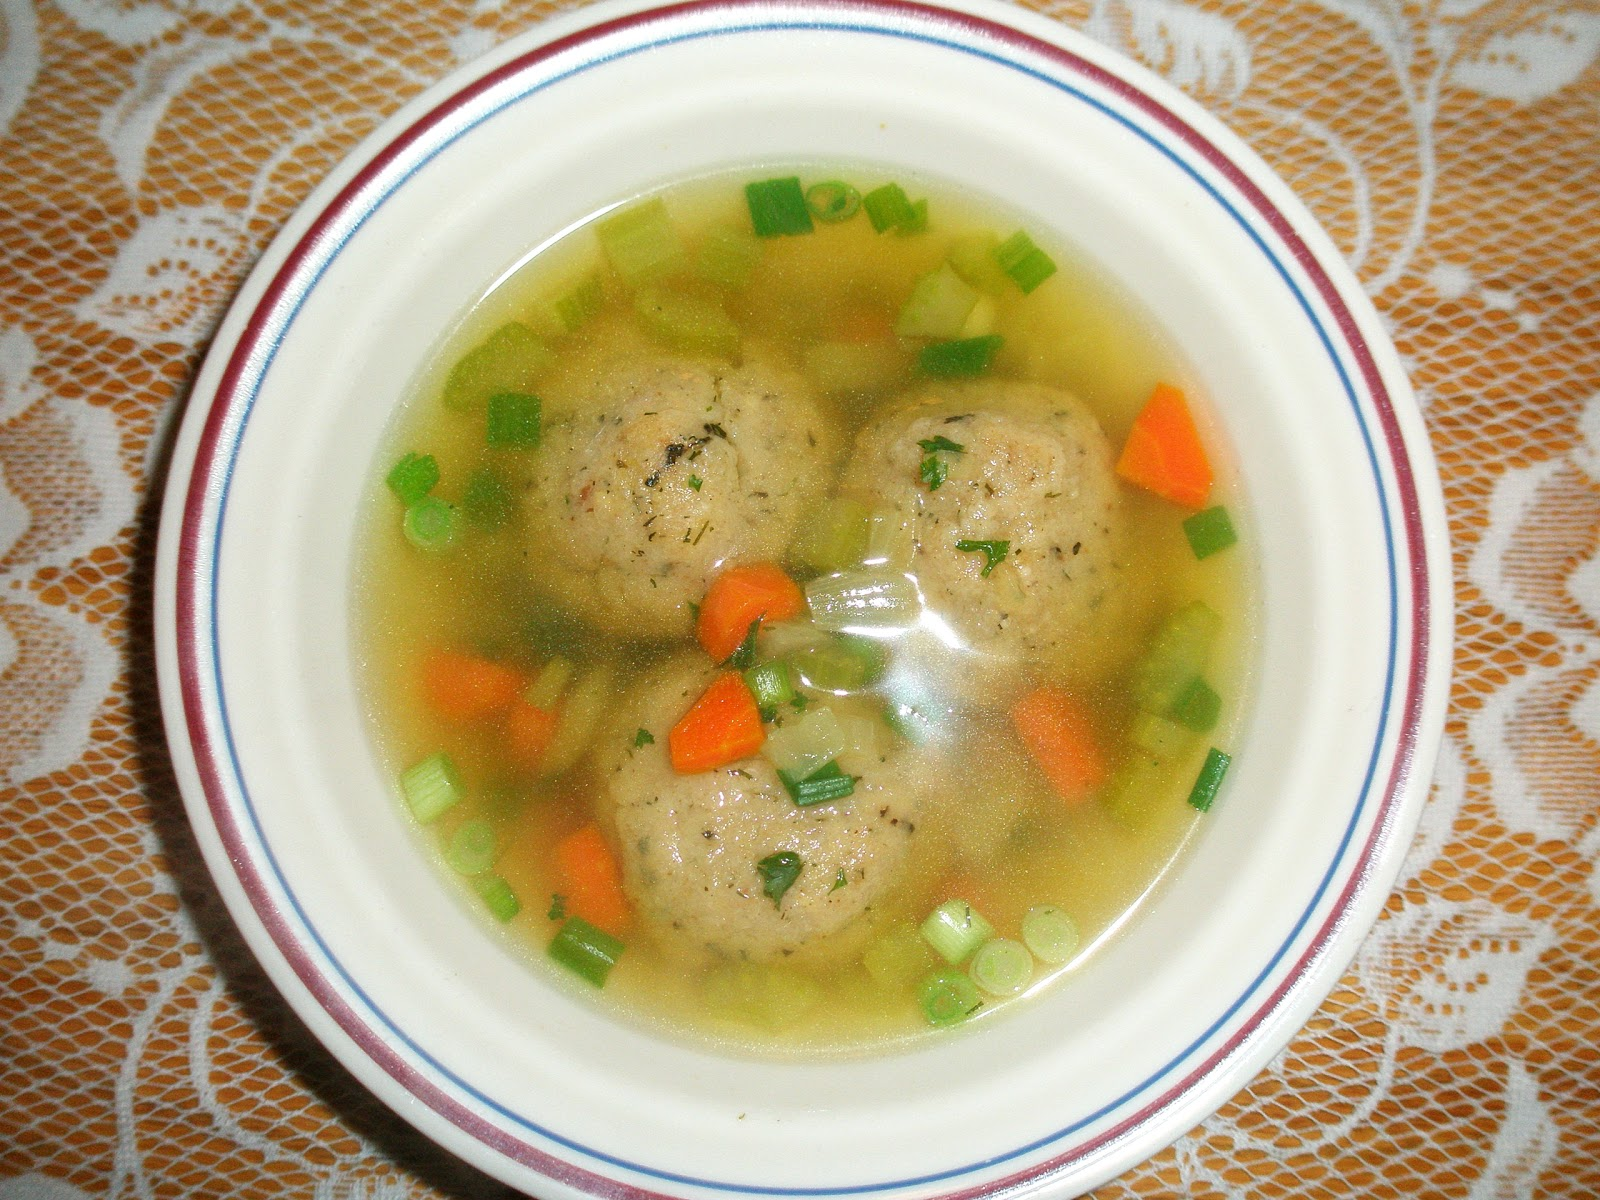 My Adventures Testing 1000 Vegan Recipes: Vegan Matzo Ball Soup